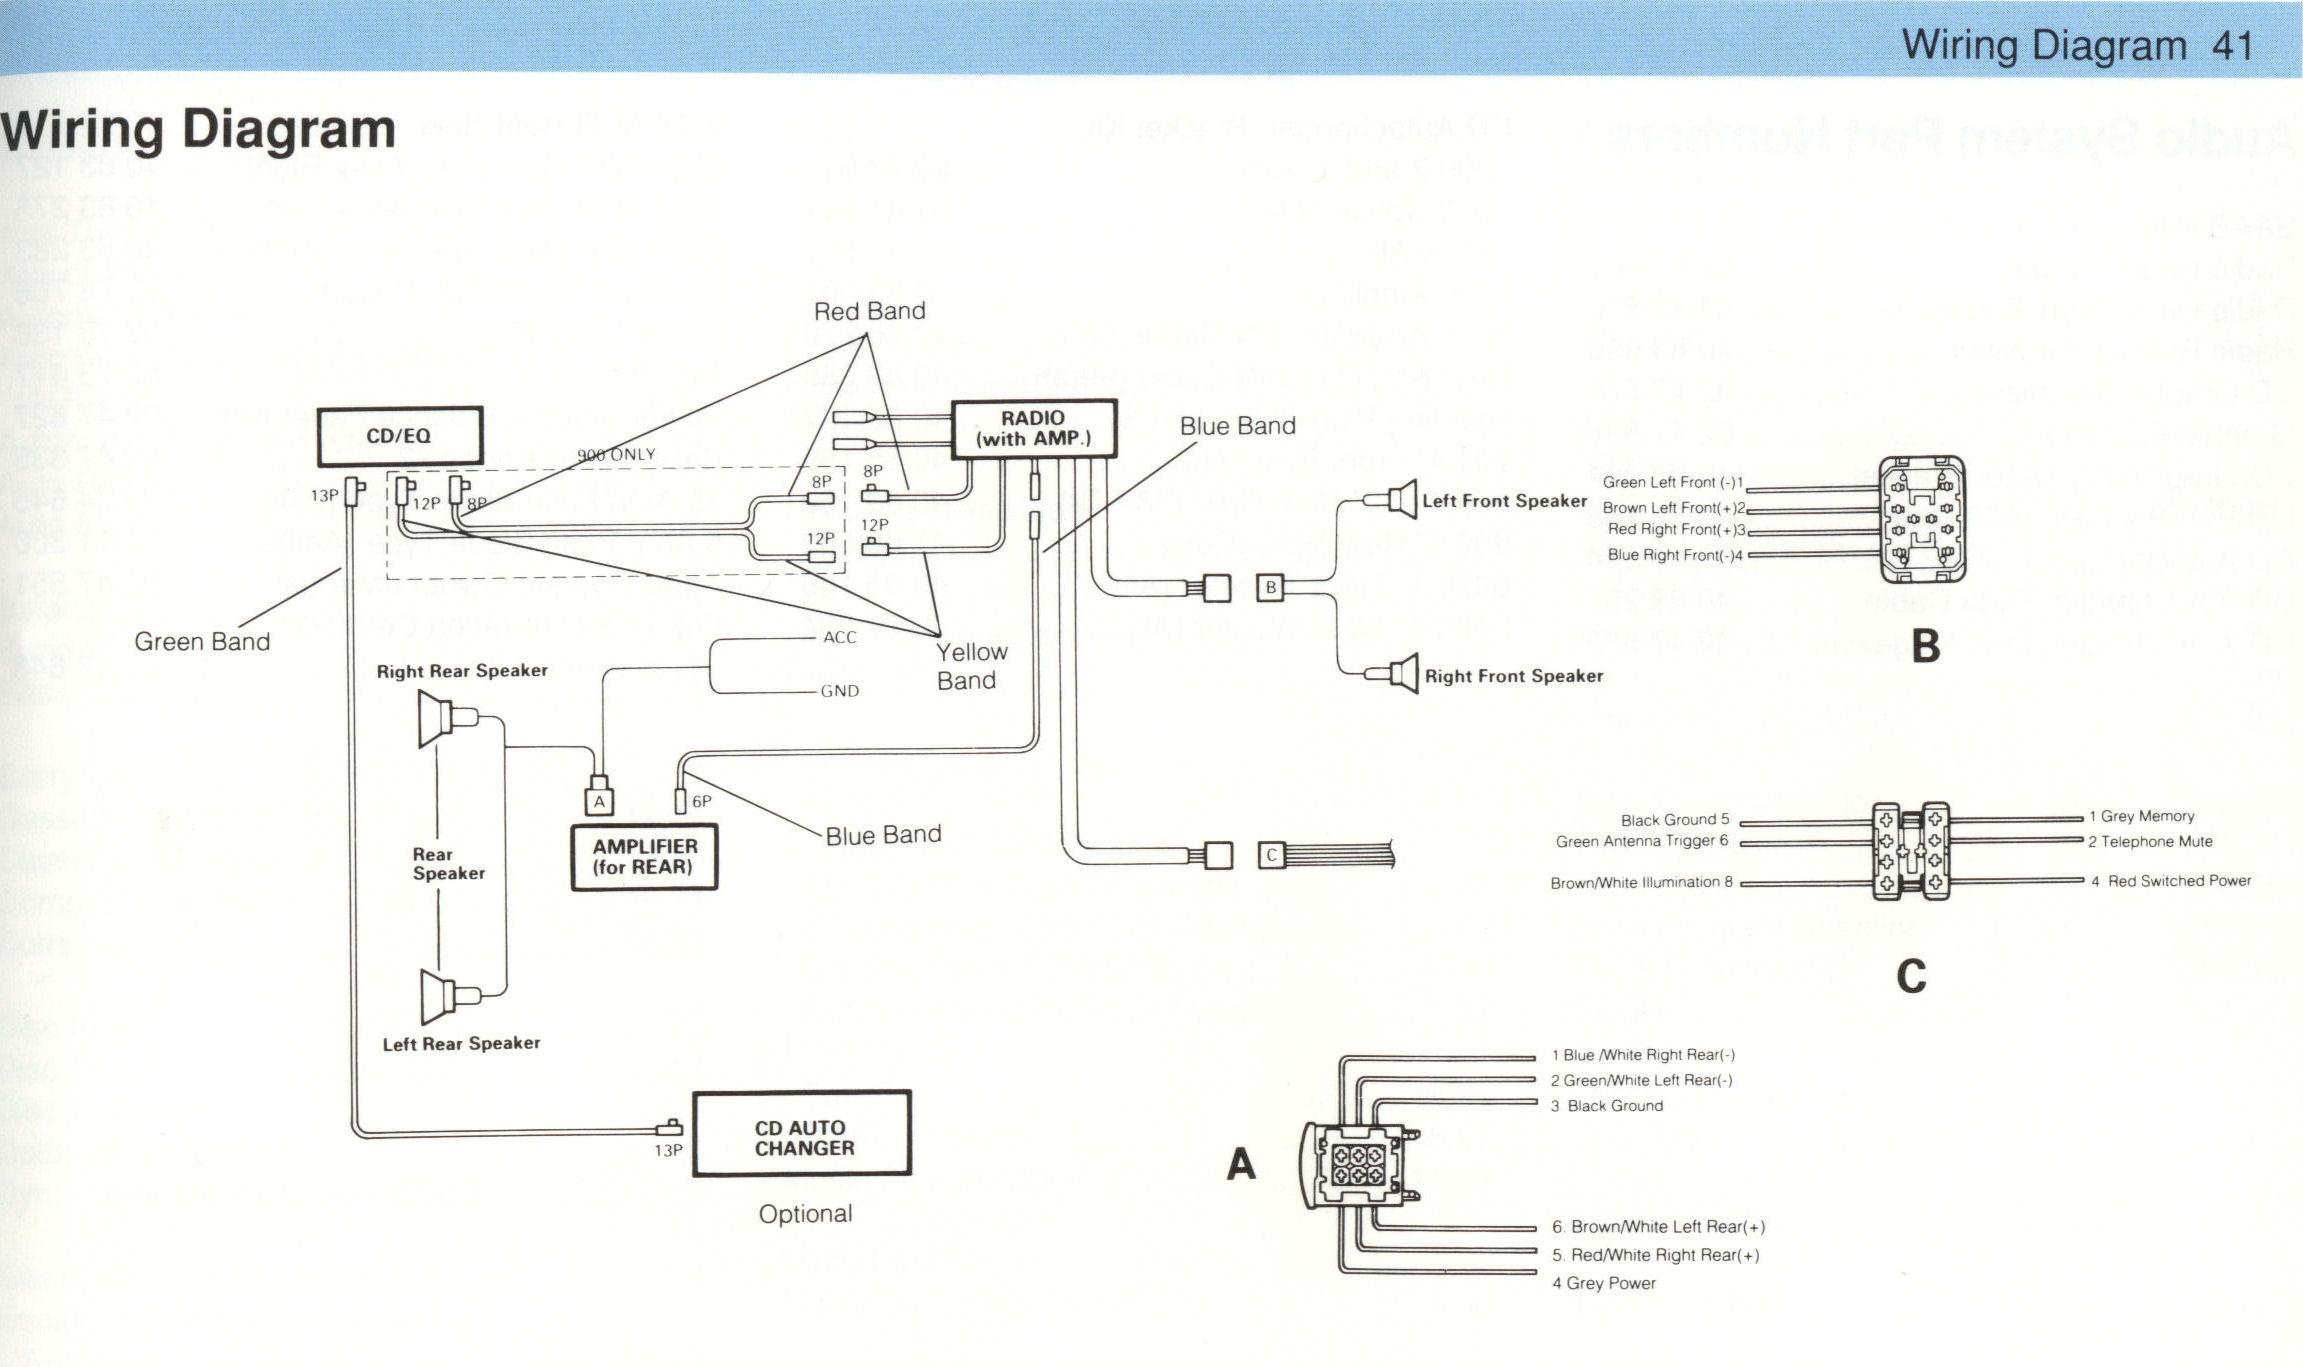 Clarion Nx500 Wiring Diagram from schematron.org